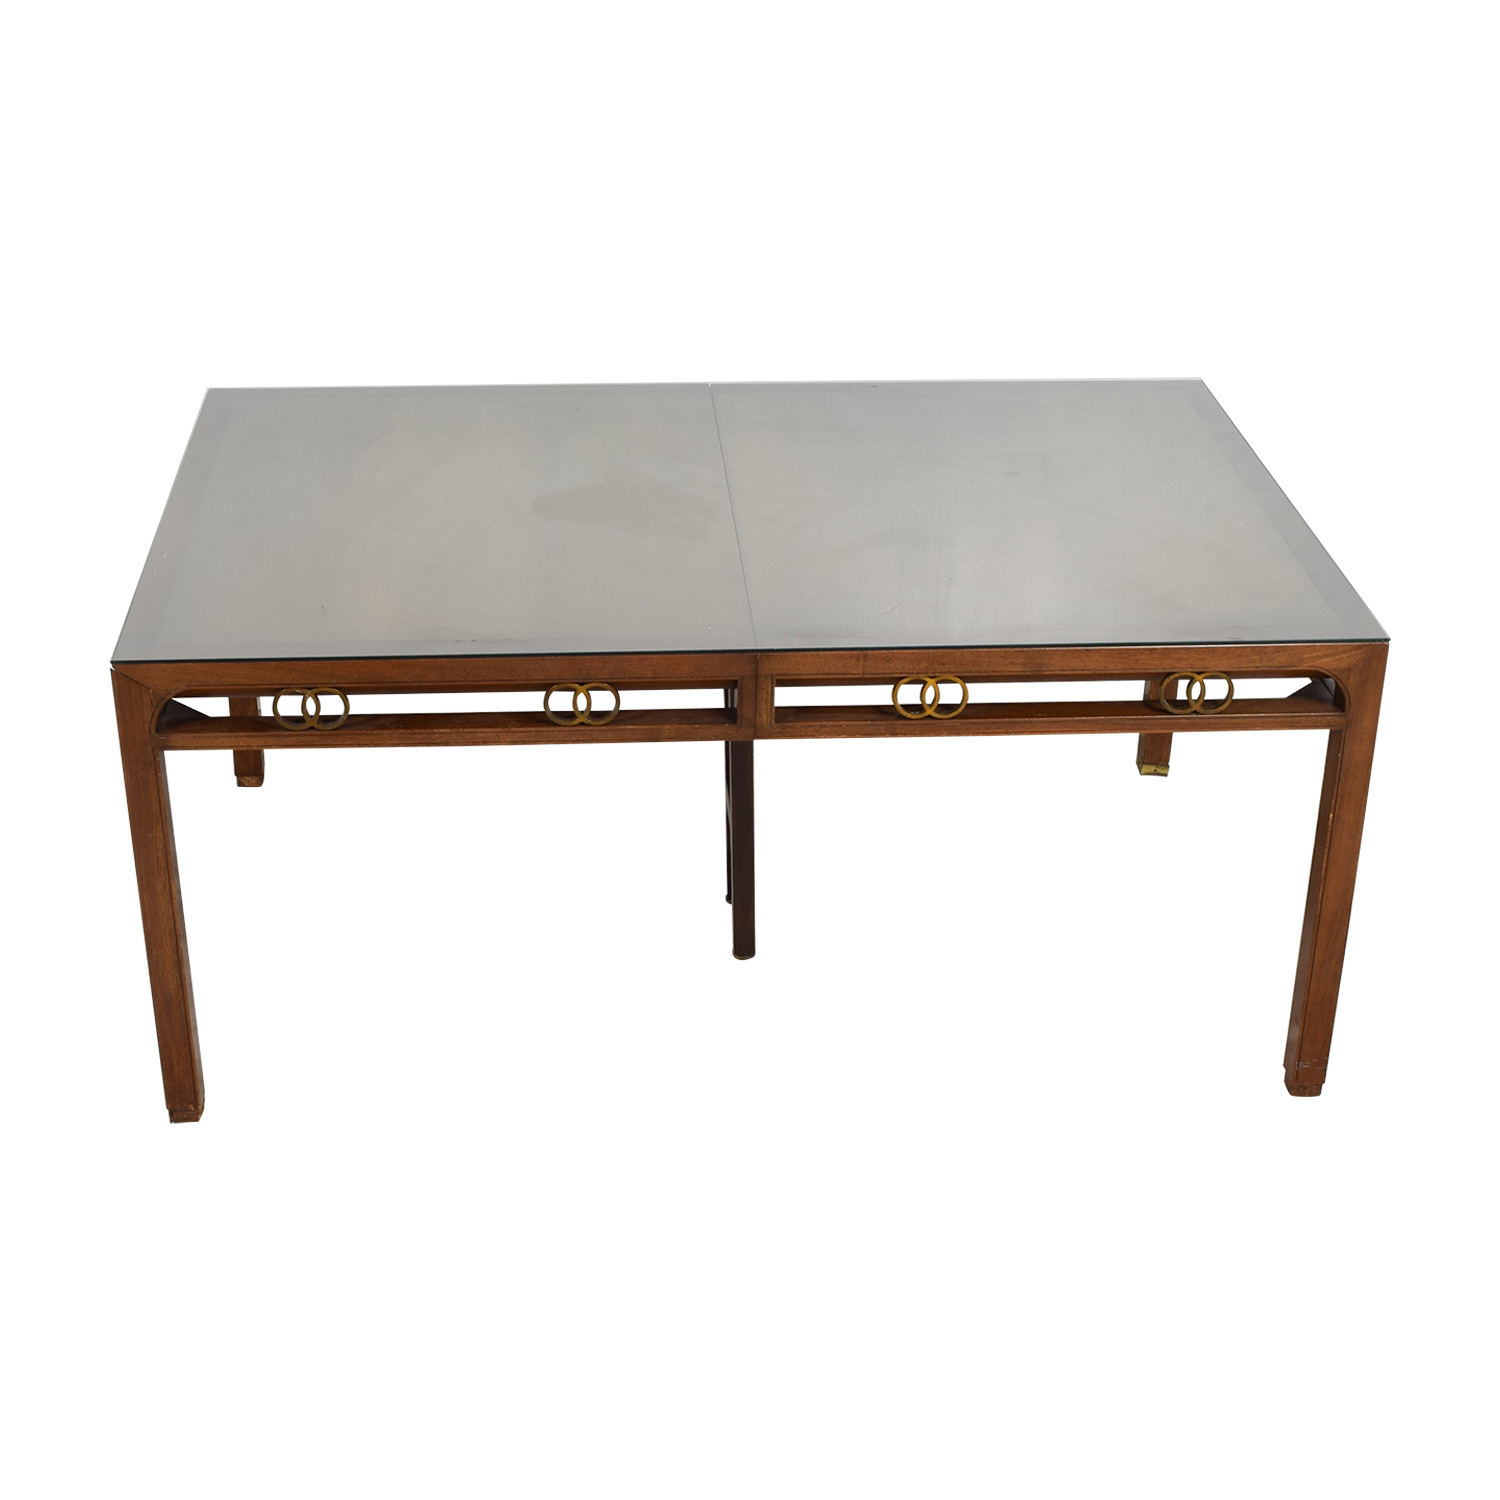 Baker Baker Mid-Century Modern Dining Room Table nyc